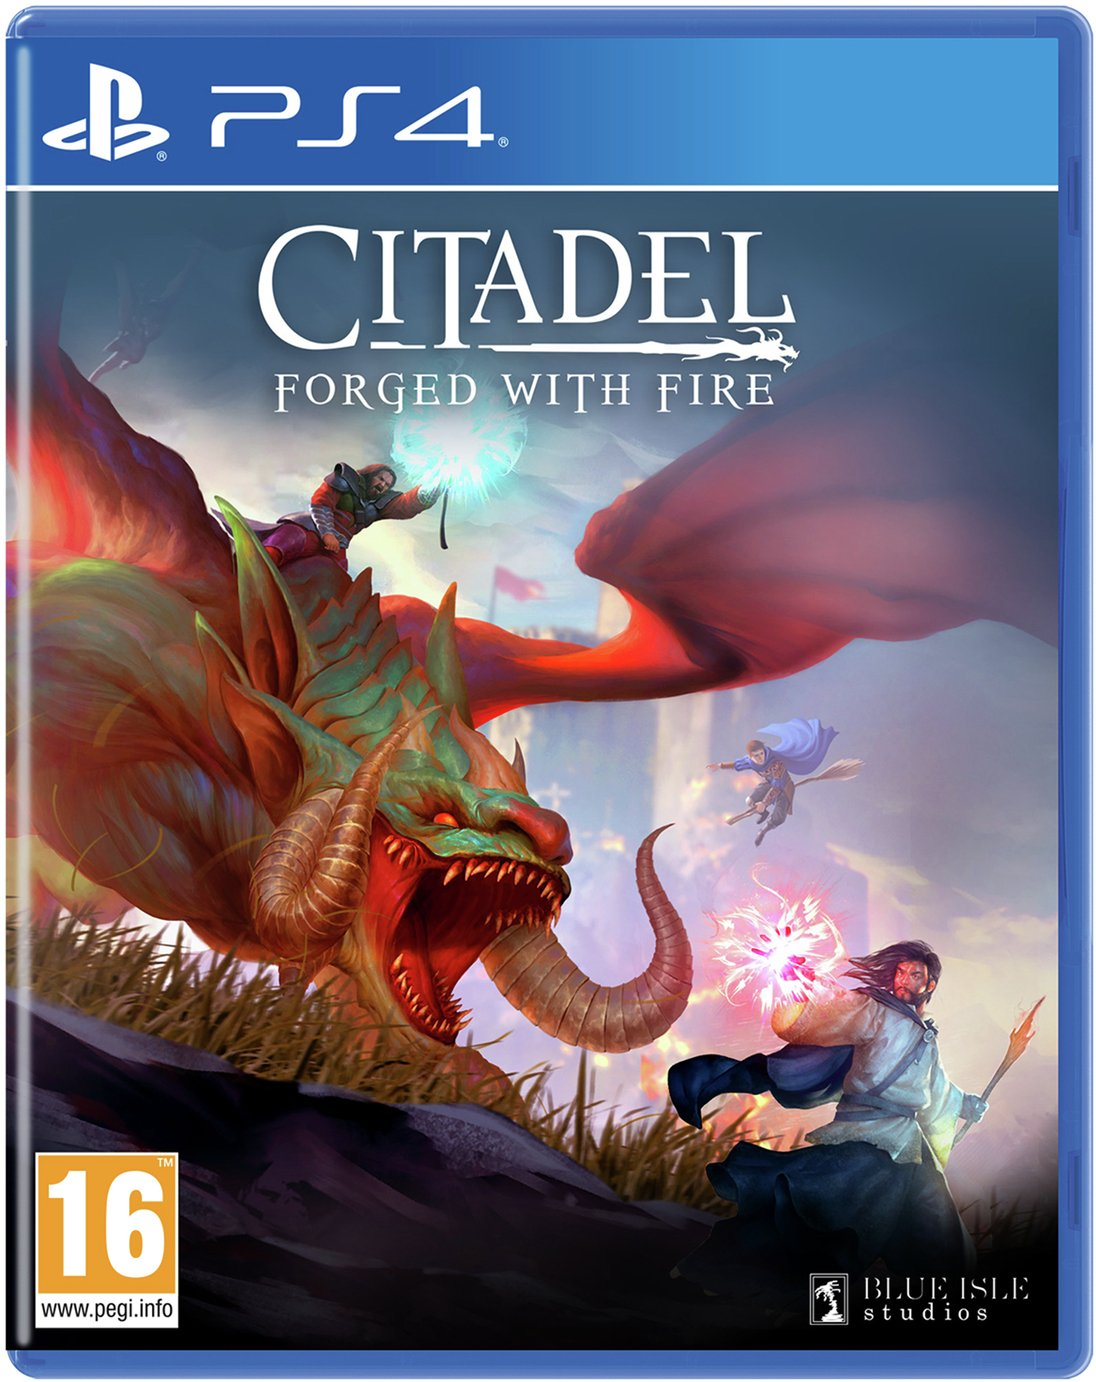 Citadel: Forged with Fire PS4 Pre-Order Game